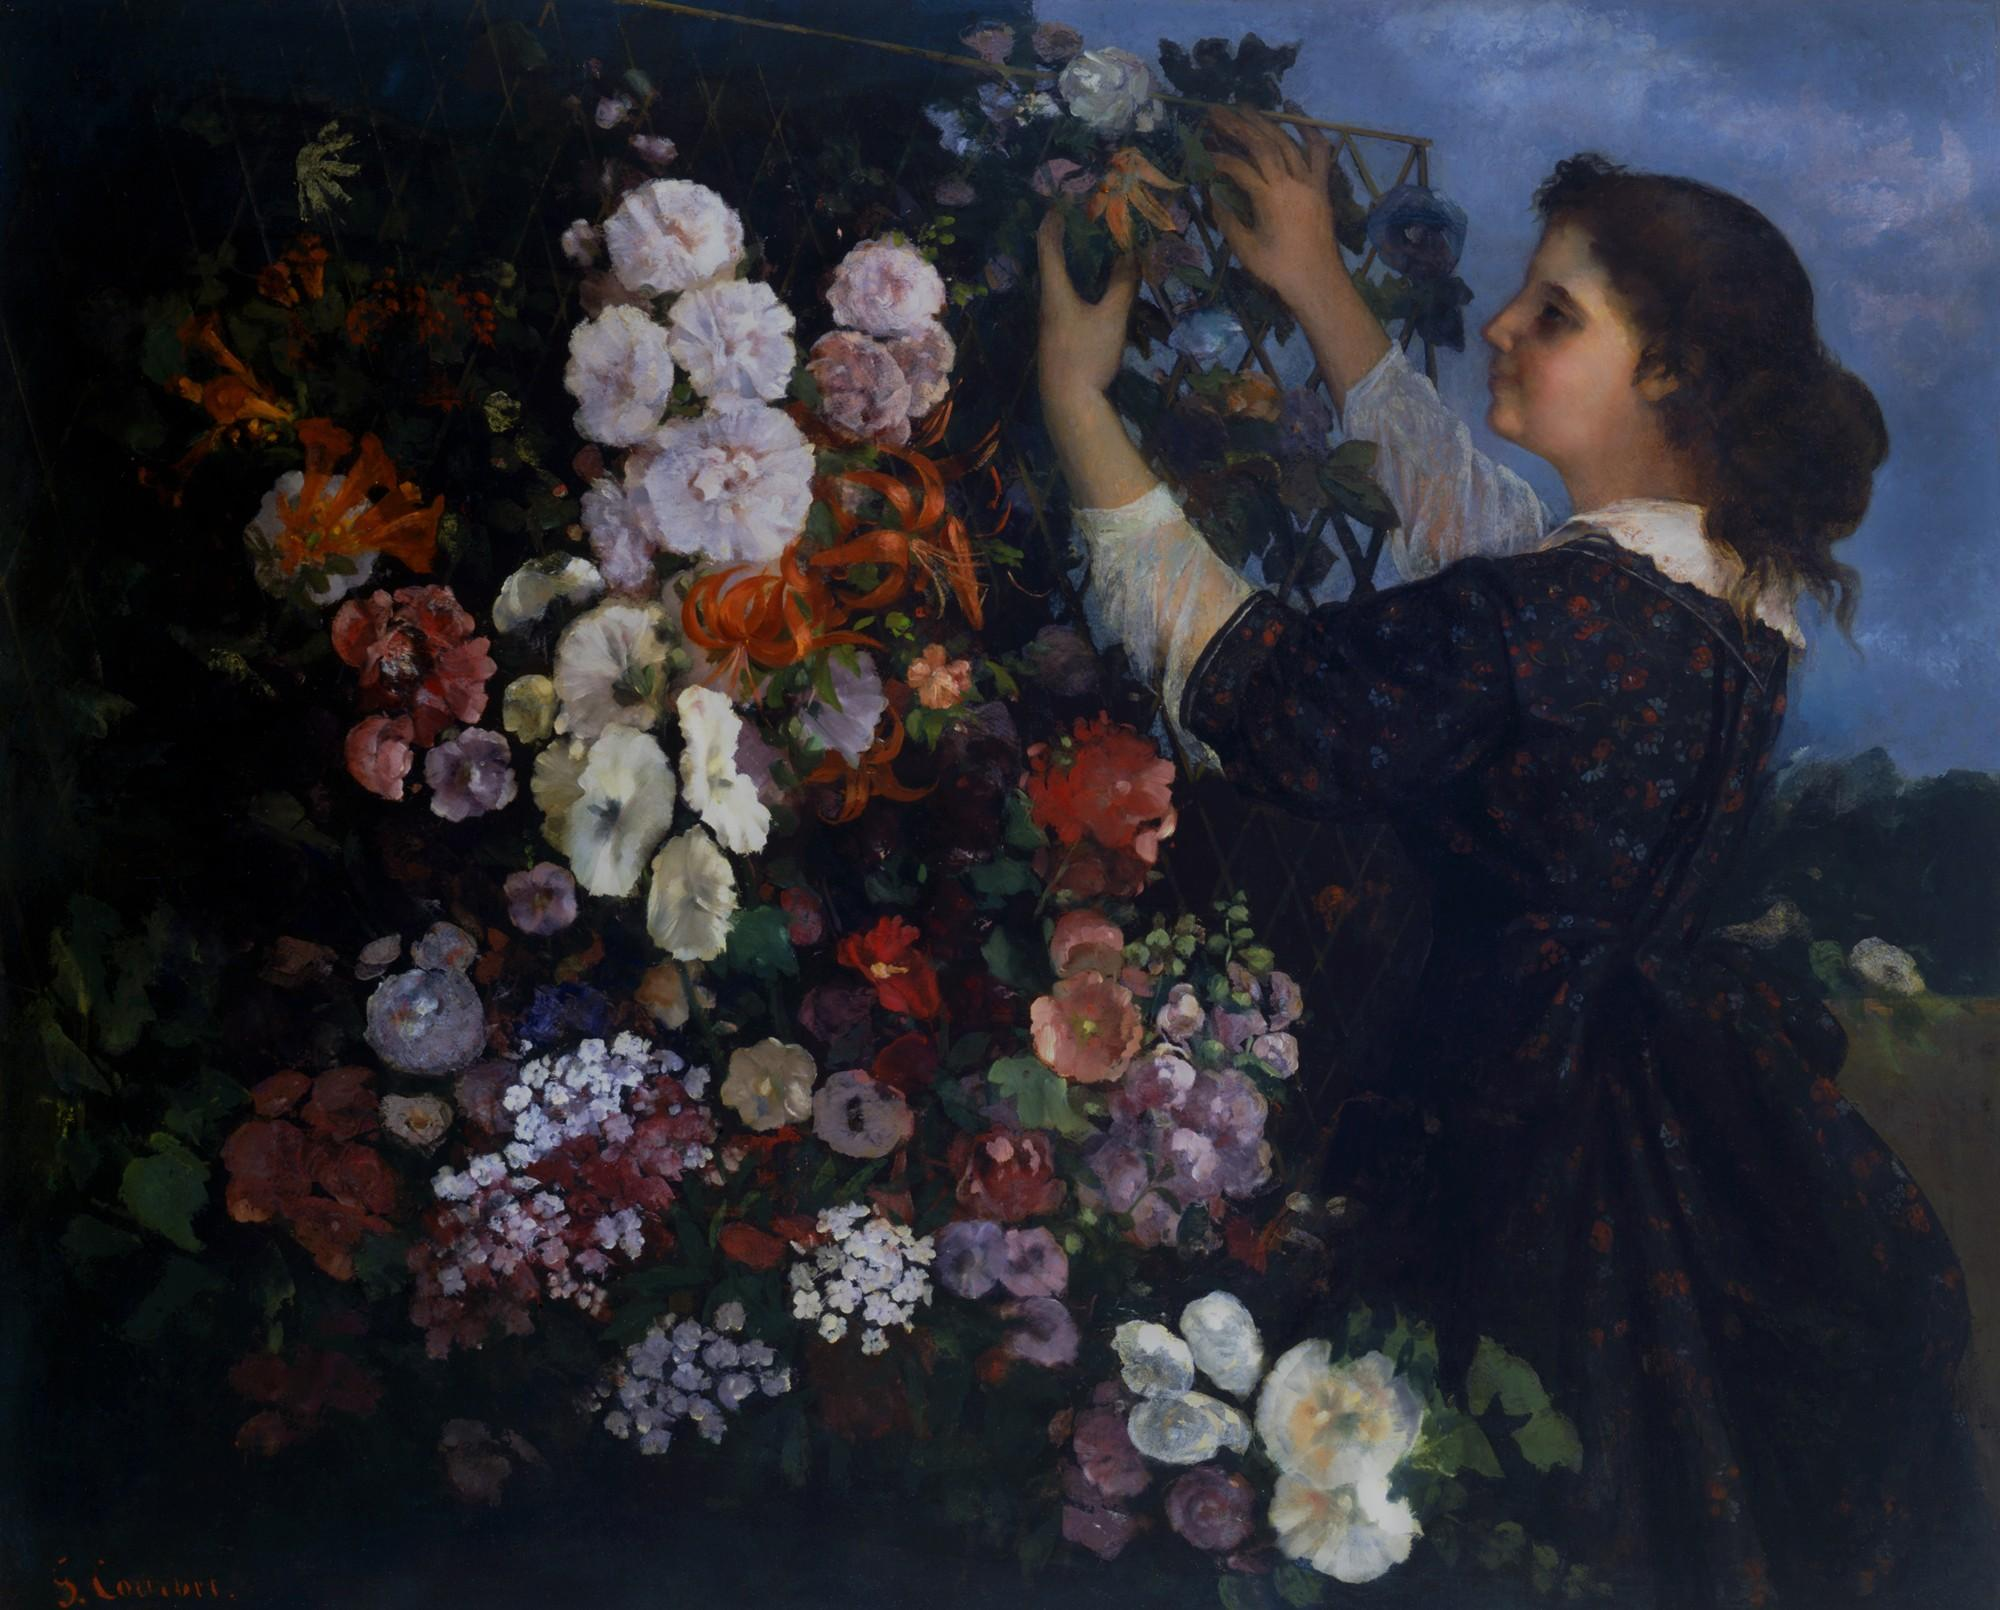 Gustave Courbet (French,1819–1877), The Trellis, 1862. Oil on canvas.